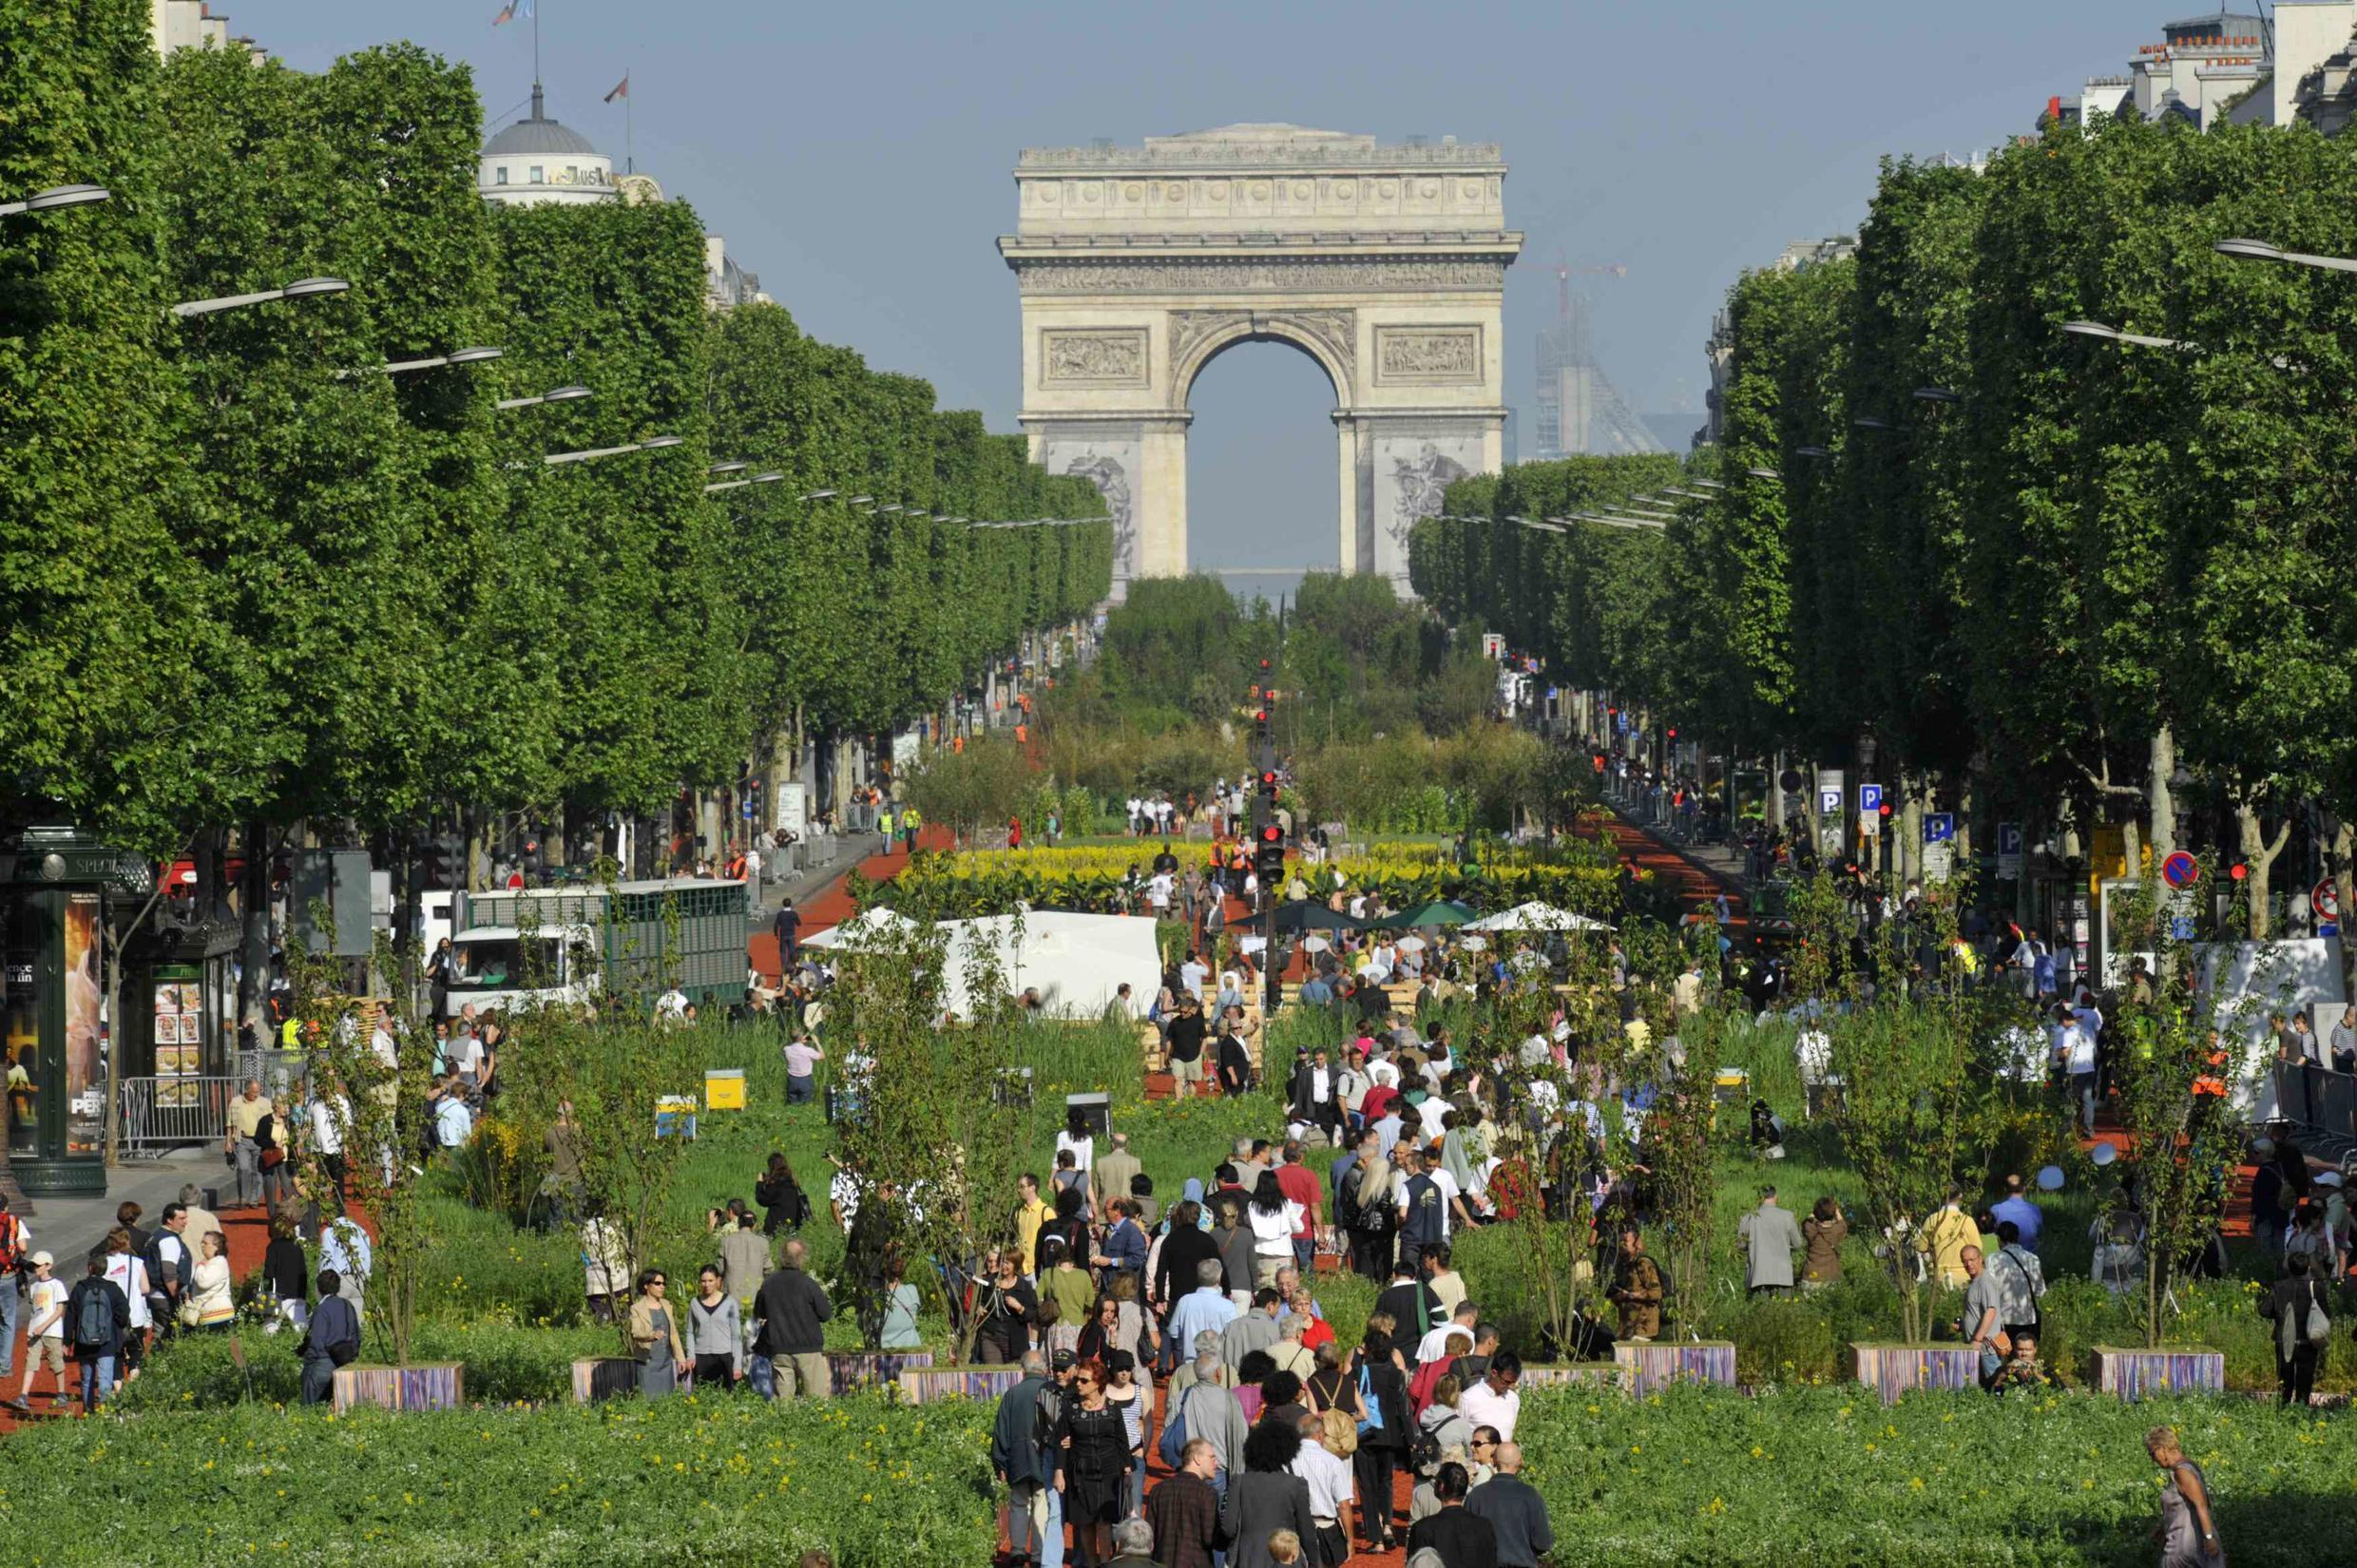 Planted fields and trees on Paris' Champs-Élysées, with the Arc de Triomphe in the background